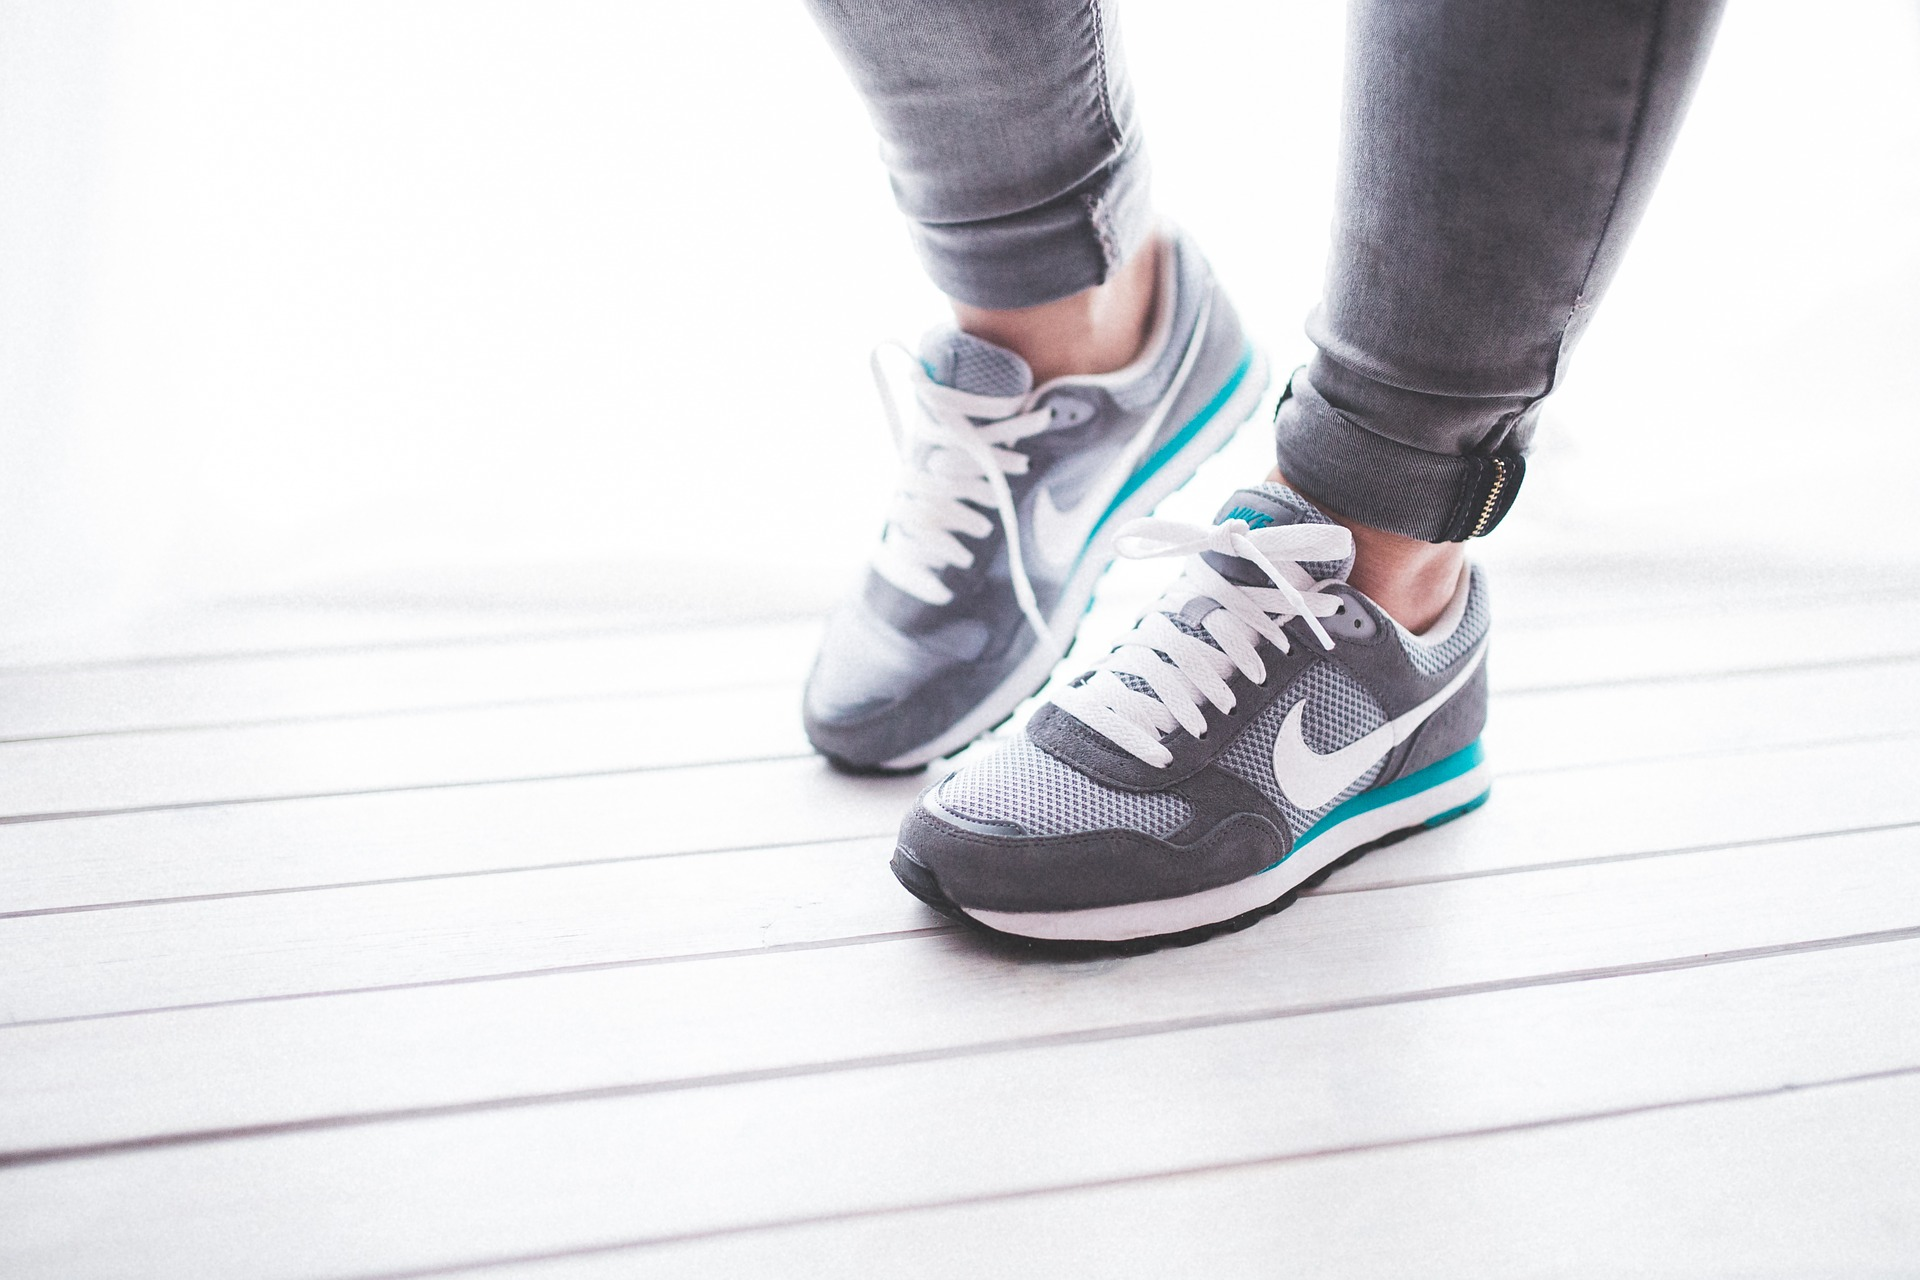 STEP up your average walking speed.